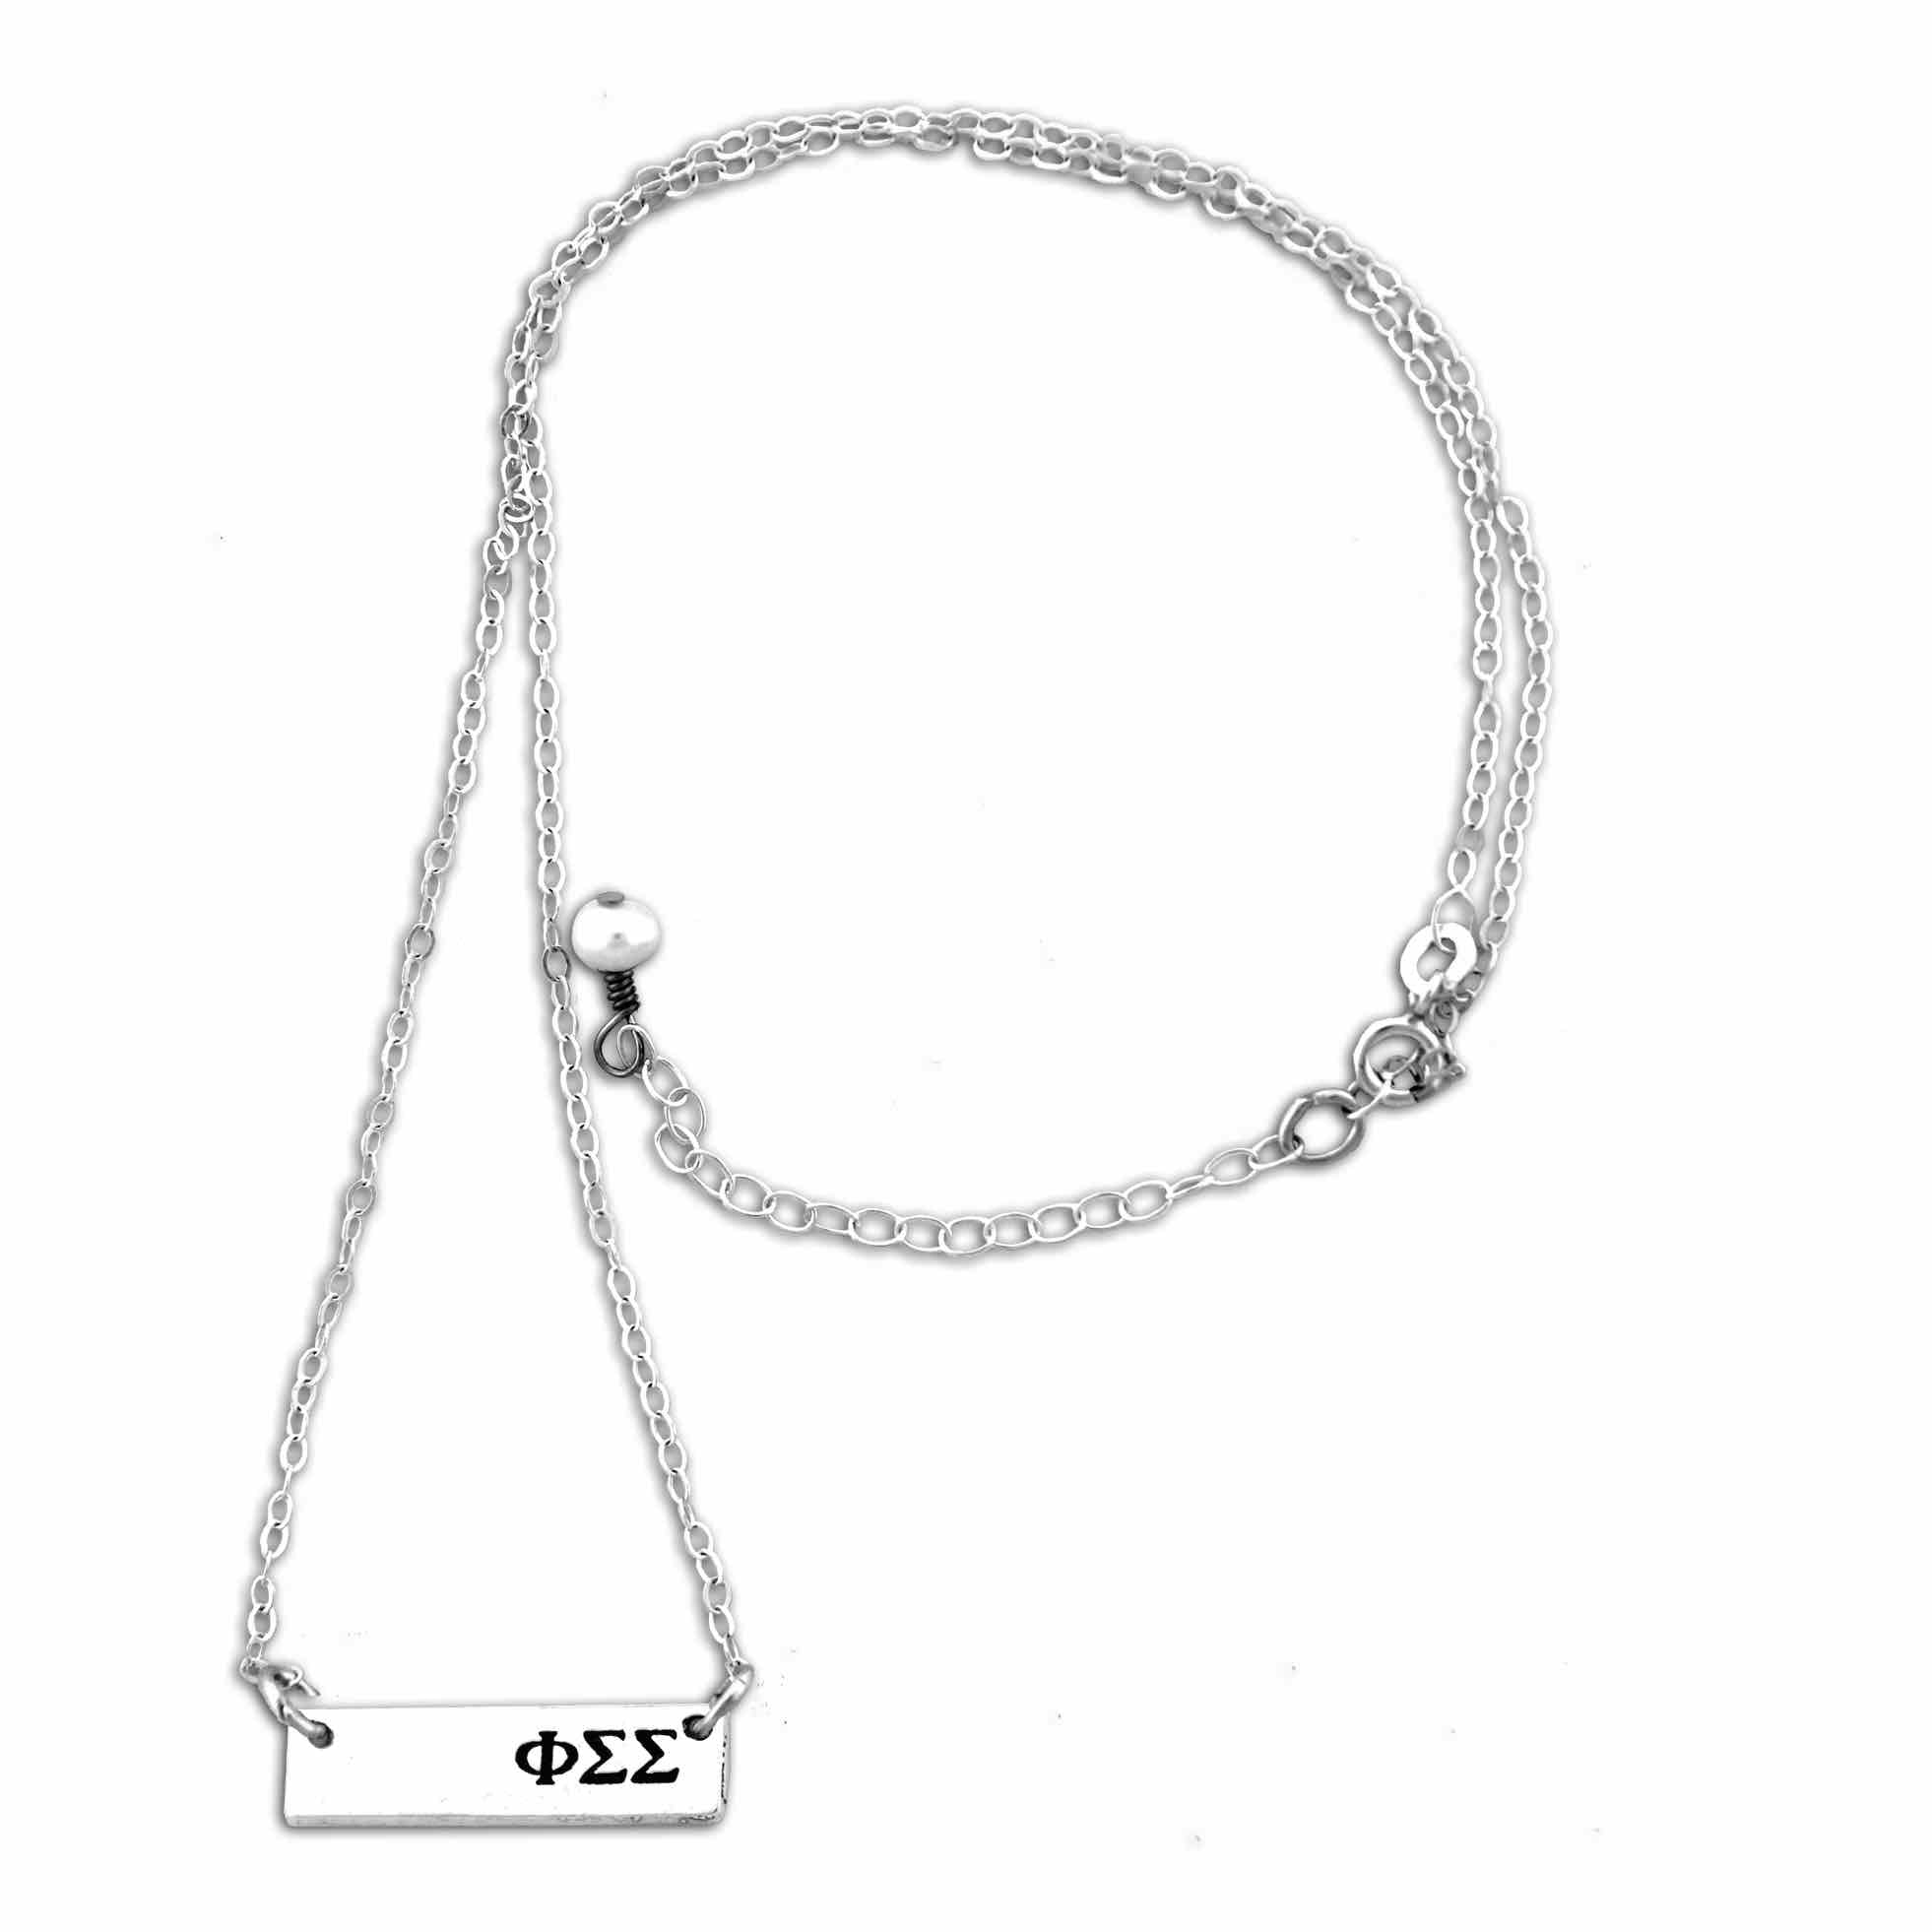 Phi Sigma Sigma Choker necklace.